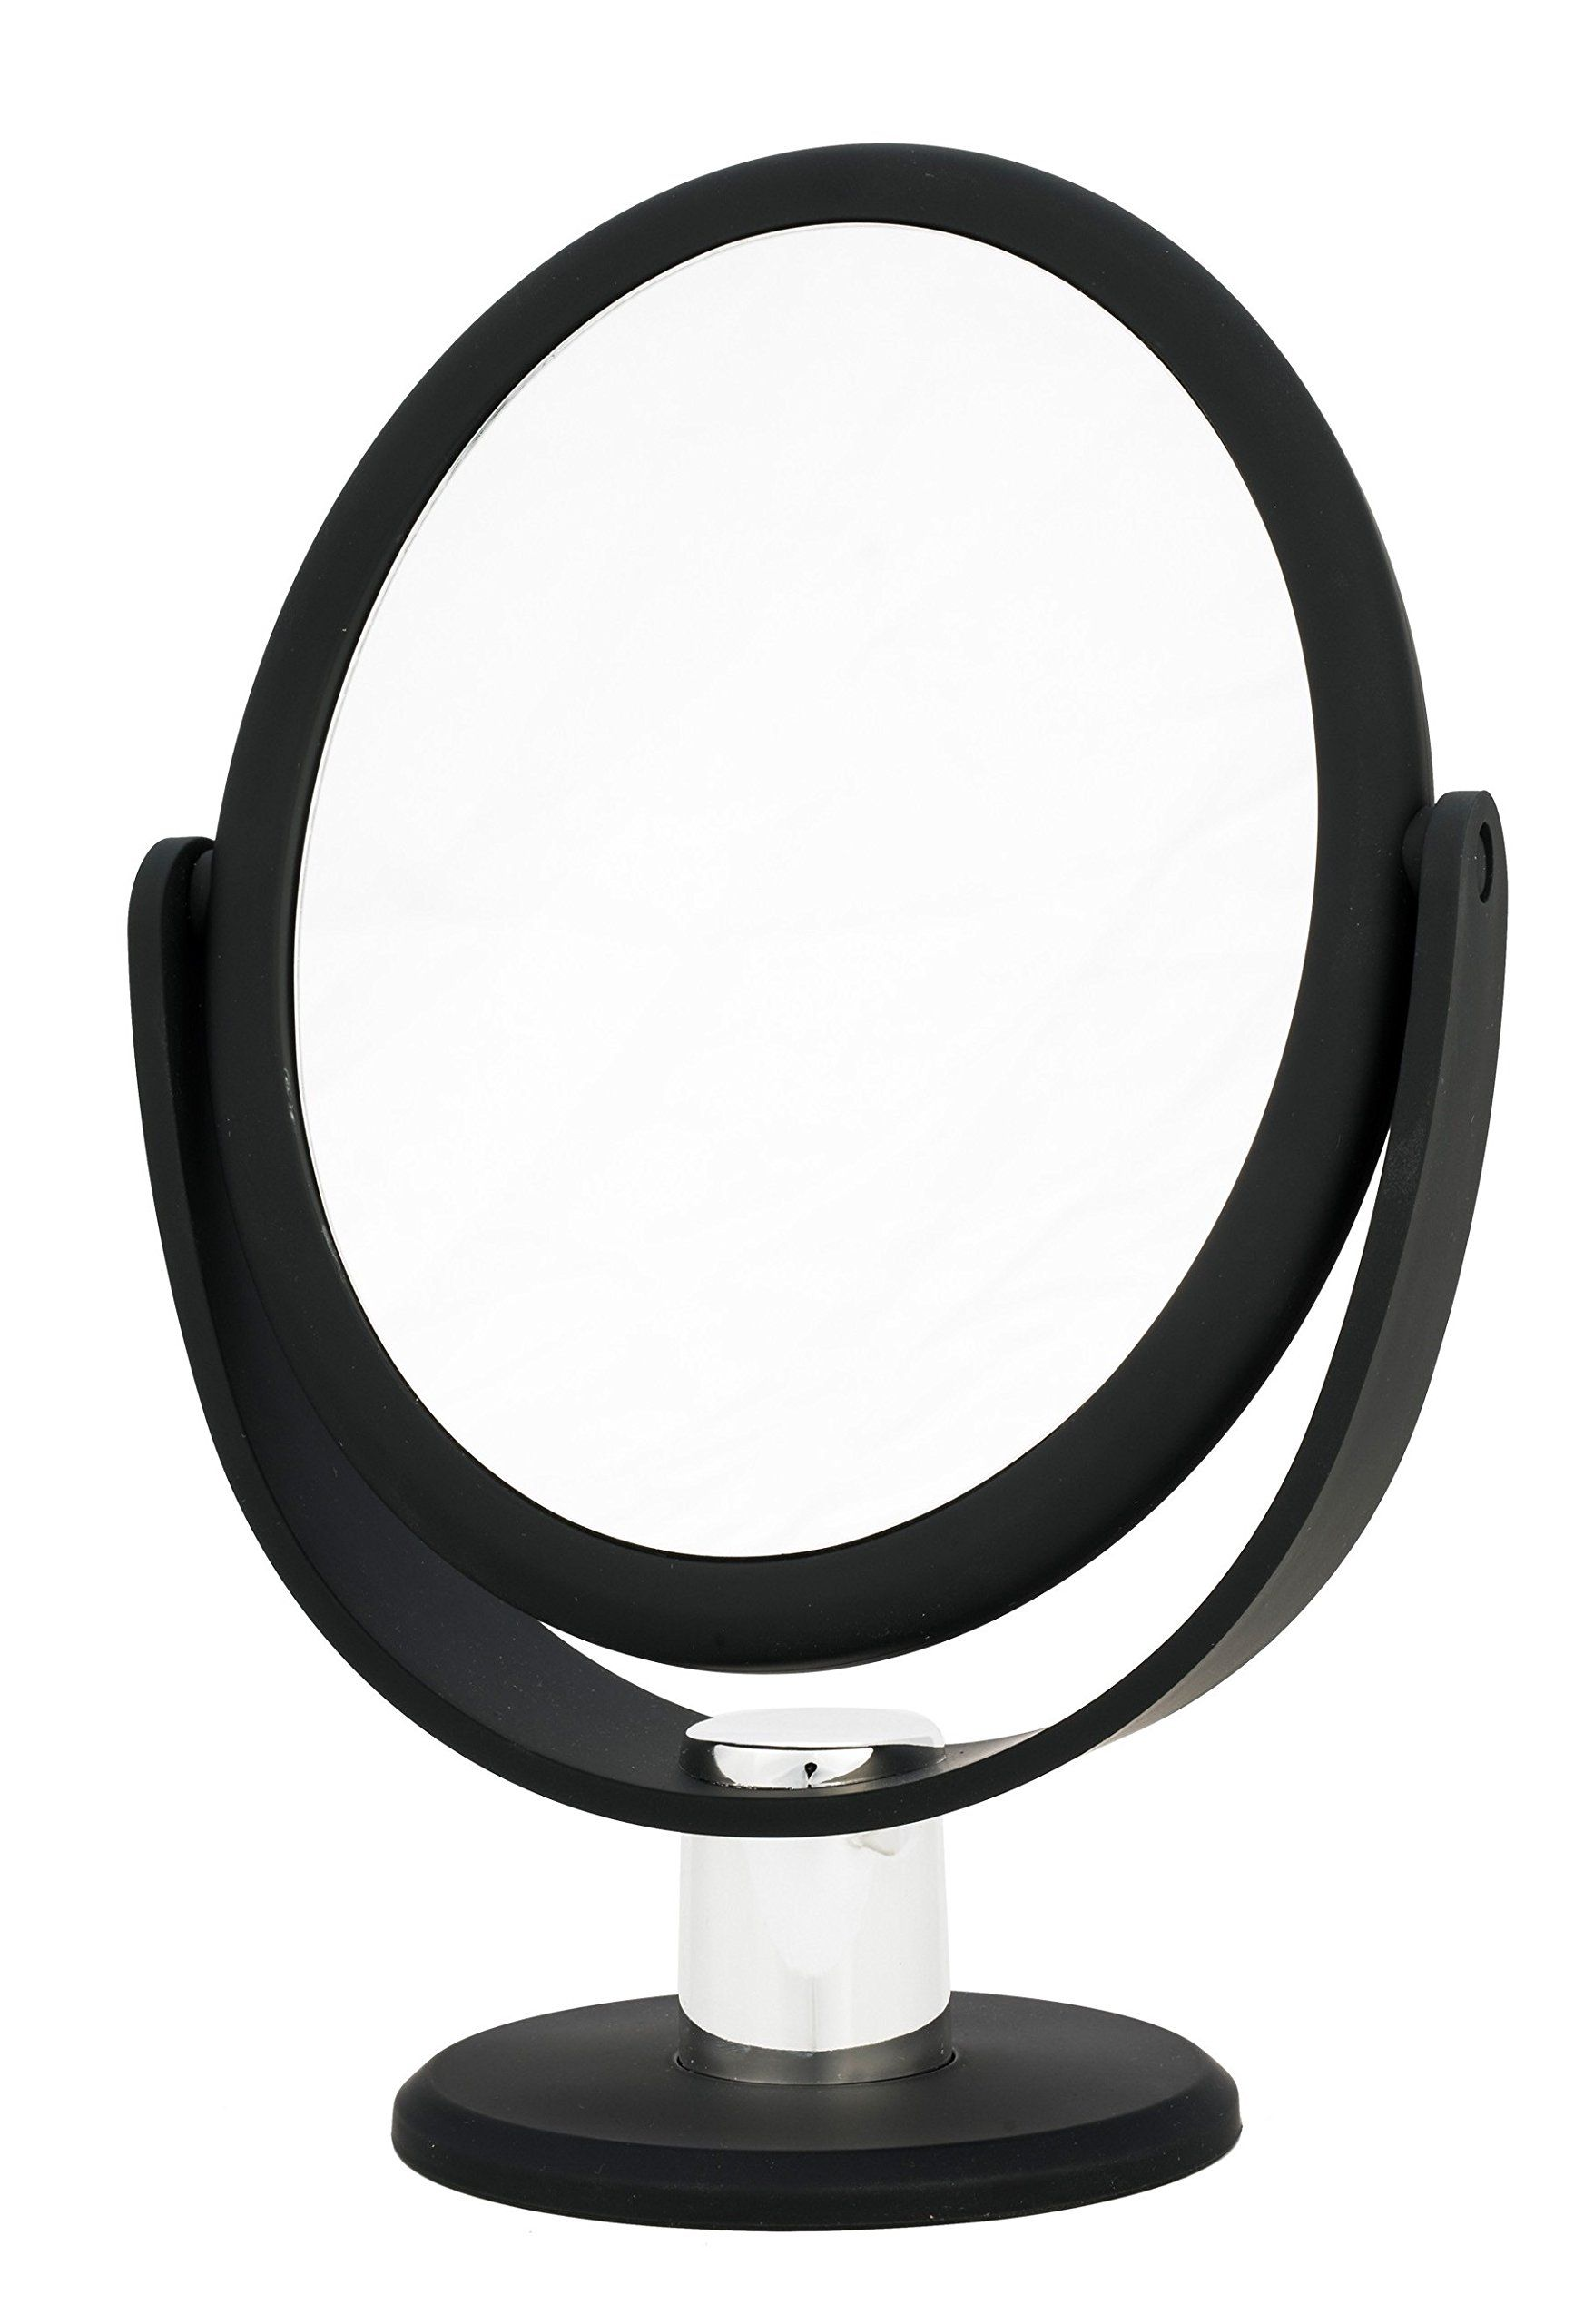 Danielle Creations Soft Touch Black Oval Vanity Mirror 7x